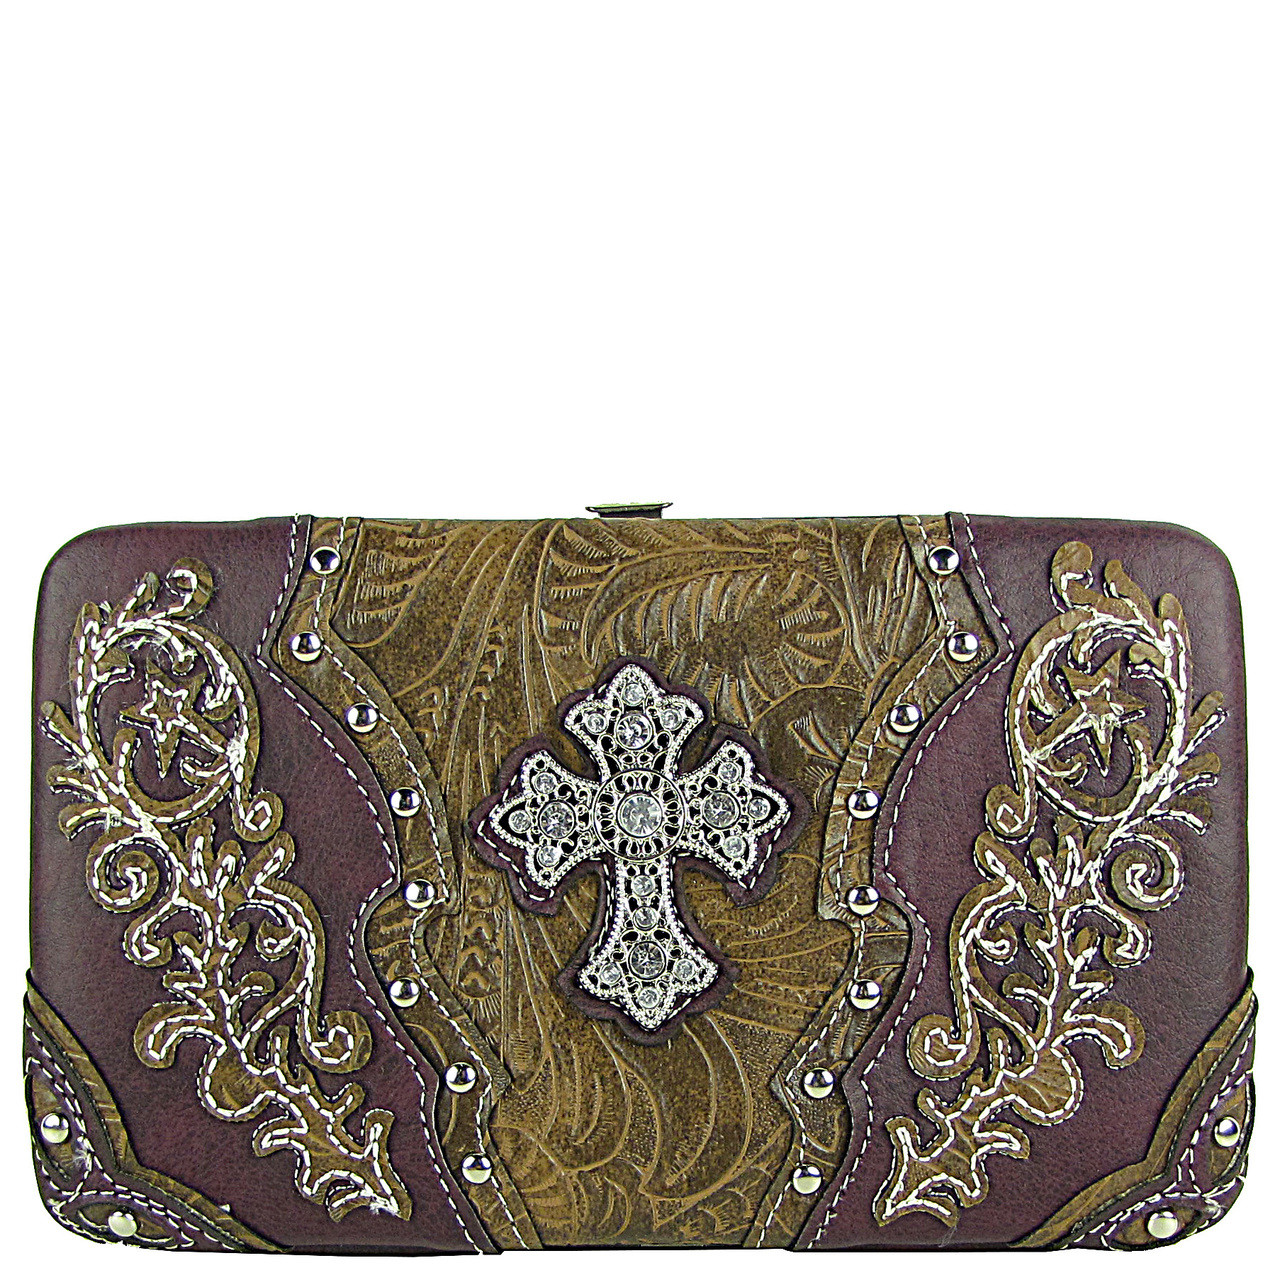 PURPLE STUDDED RHINESTONE TOOLED CROSS LOOK FLAT THICK WALLET FW2-04121PPL